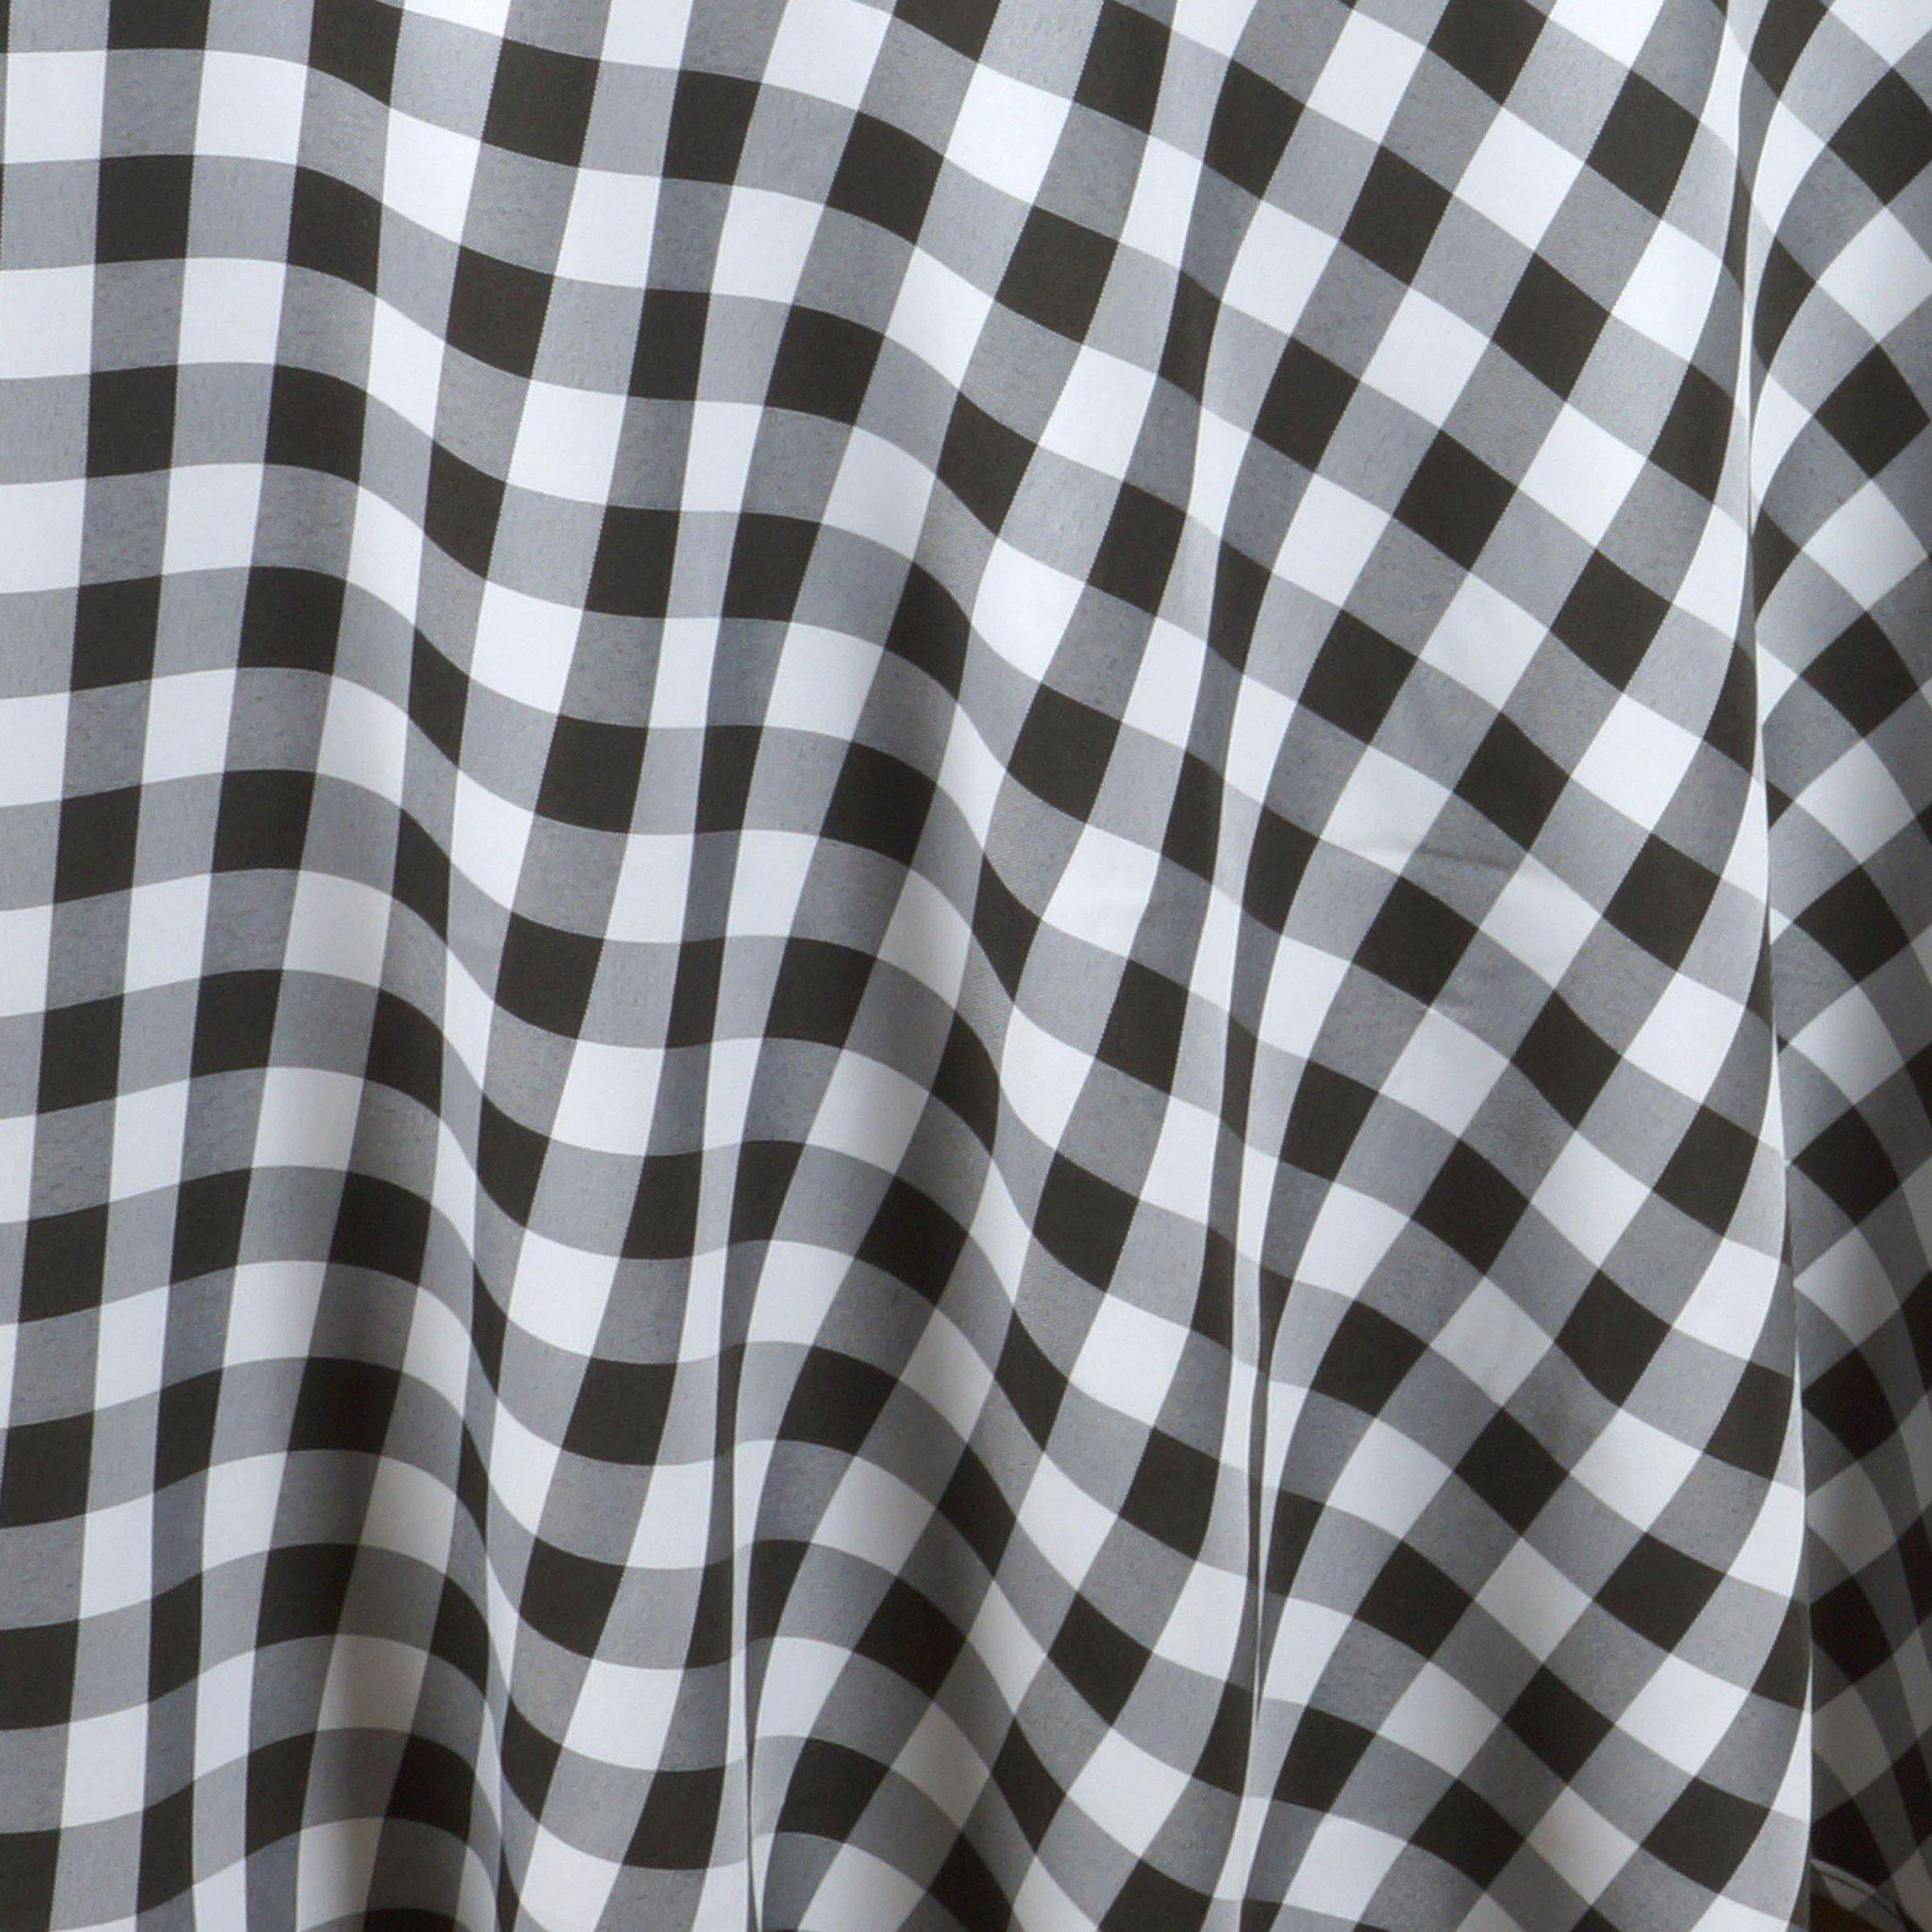 120 Whiteblack Round Checkered Gingham Polyester Picnic Tablecloth